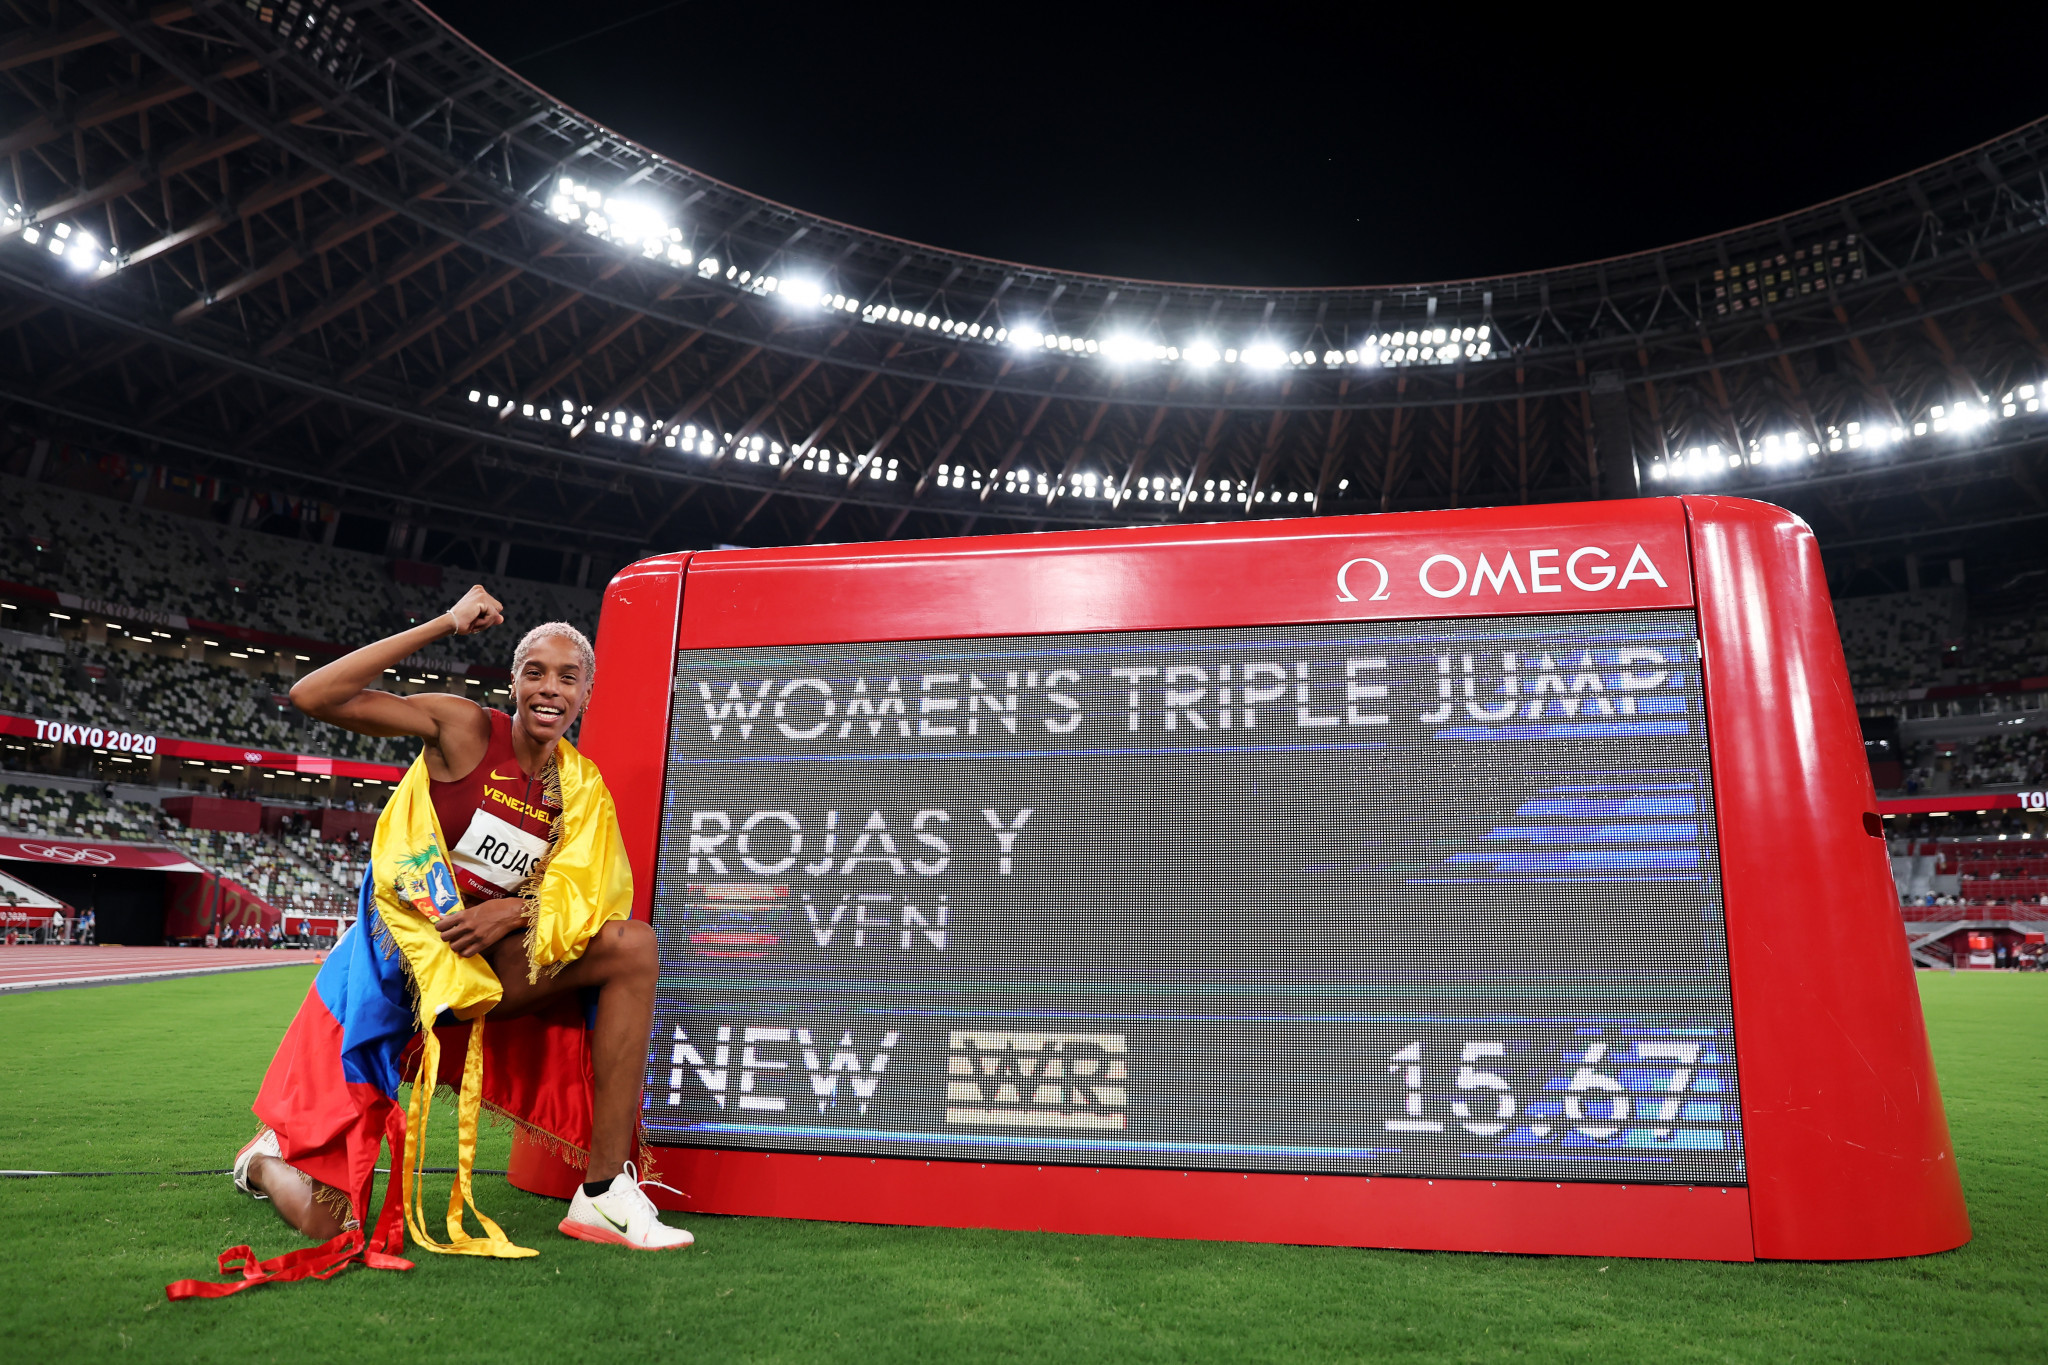 Venezuela's Yulimar Rojas was the most impressive performer across the day's track and field contests however, setting a new world record in winning the women's triple jump ©Getty Images